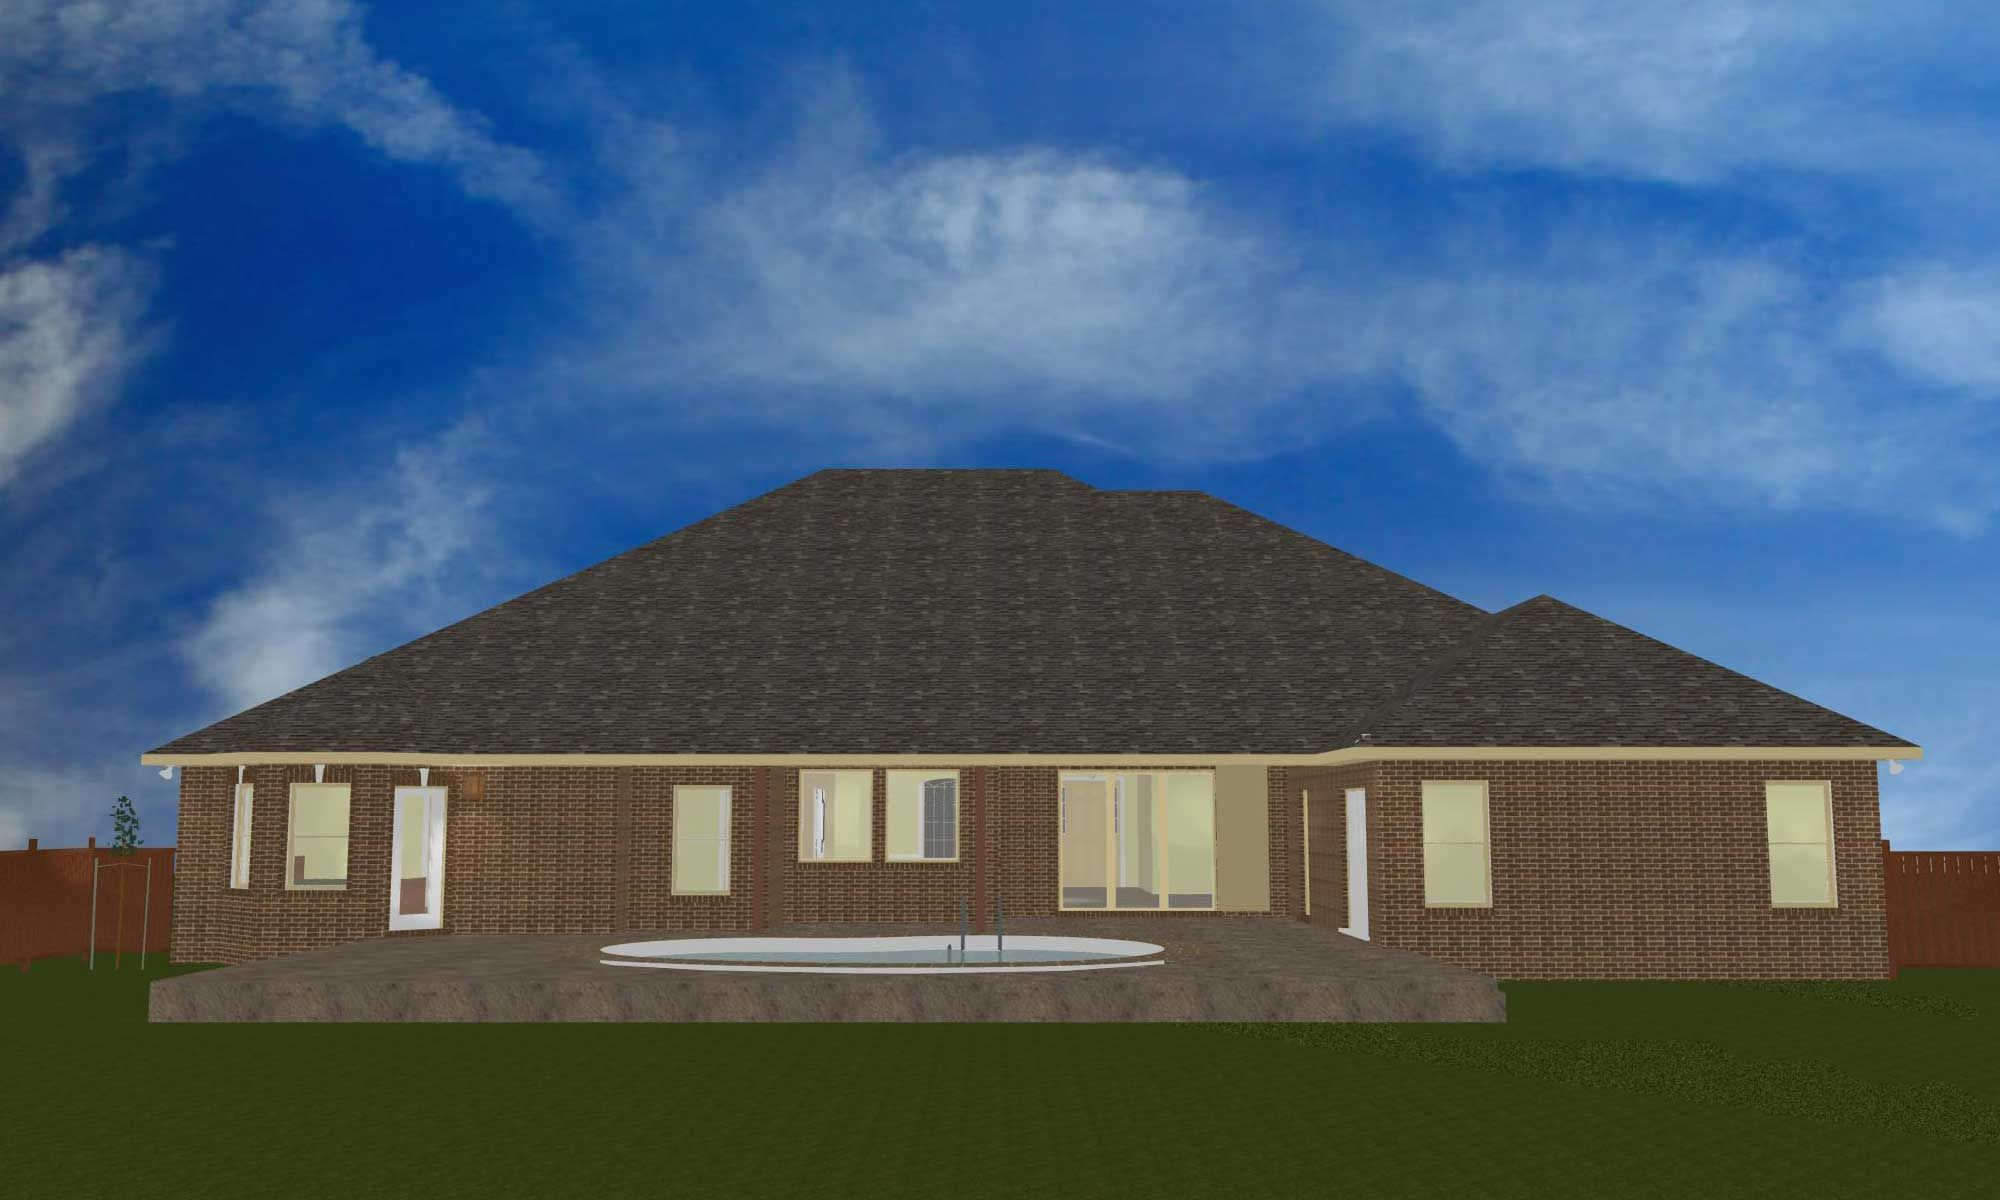 Black job rear elevation CAD model